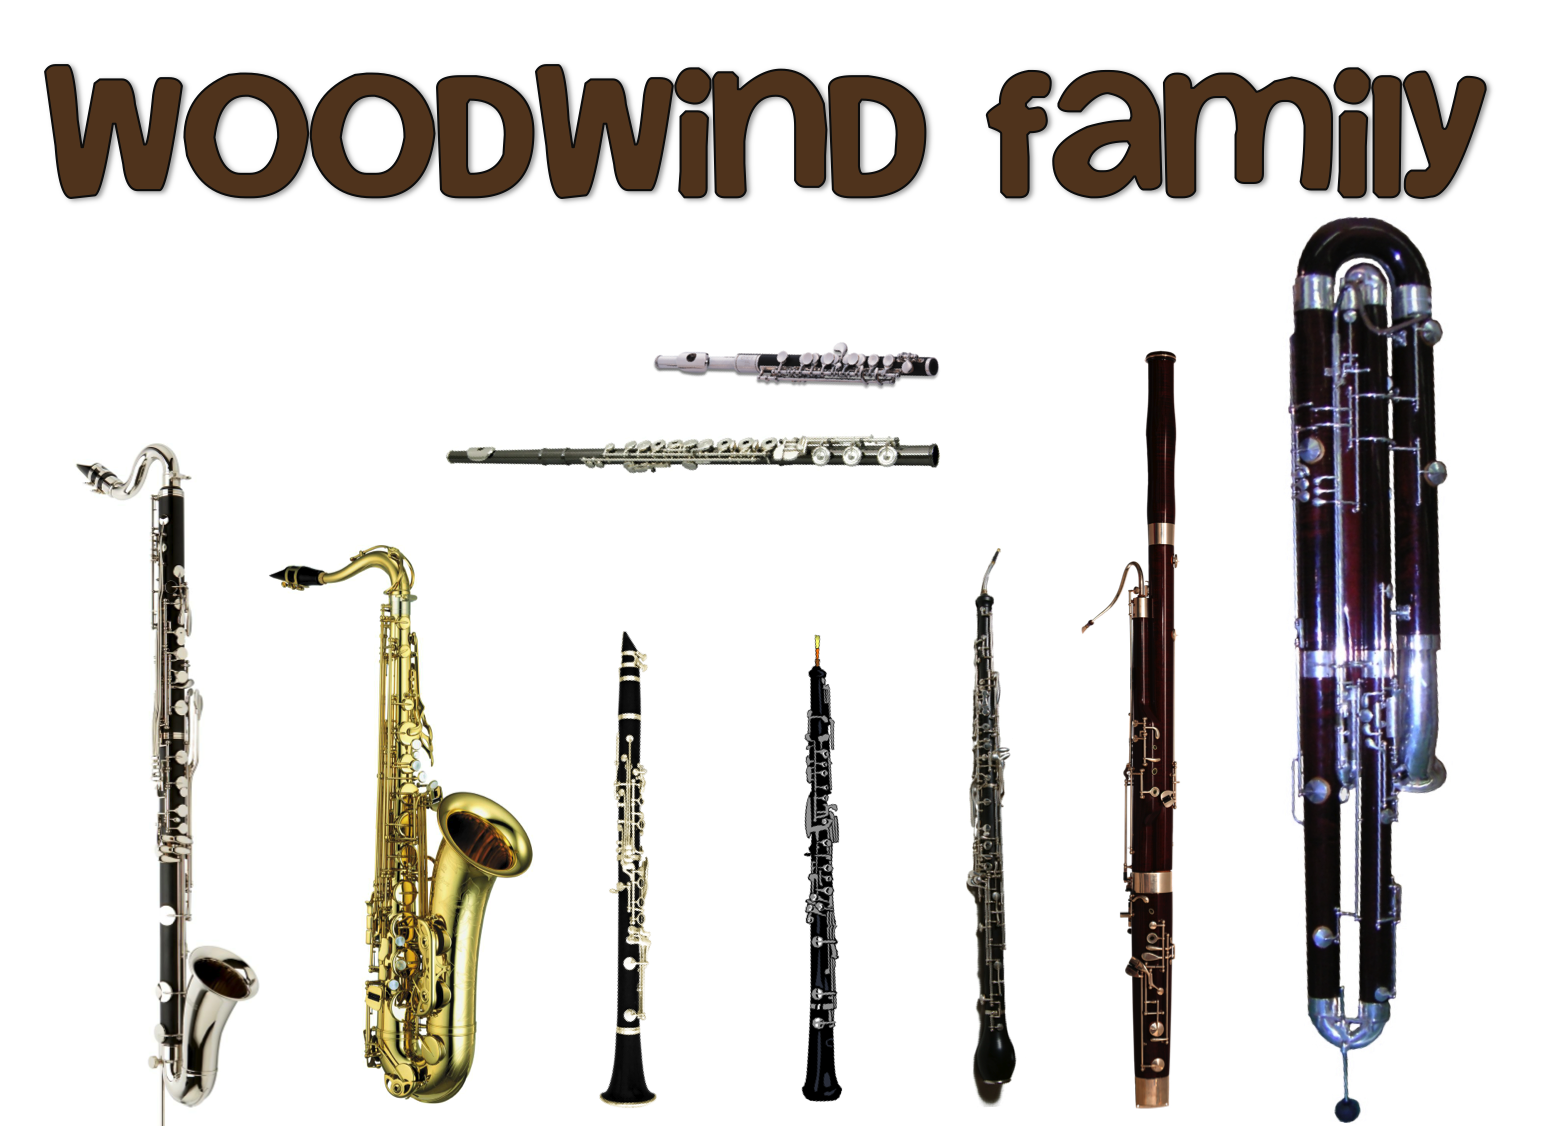 Woodwind Family Board - Lessons - Tes Teach